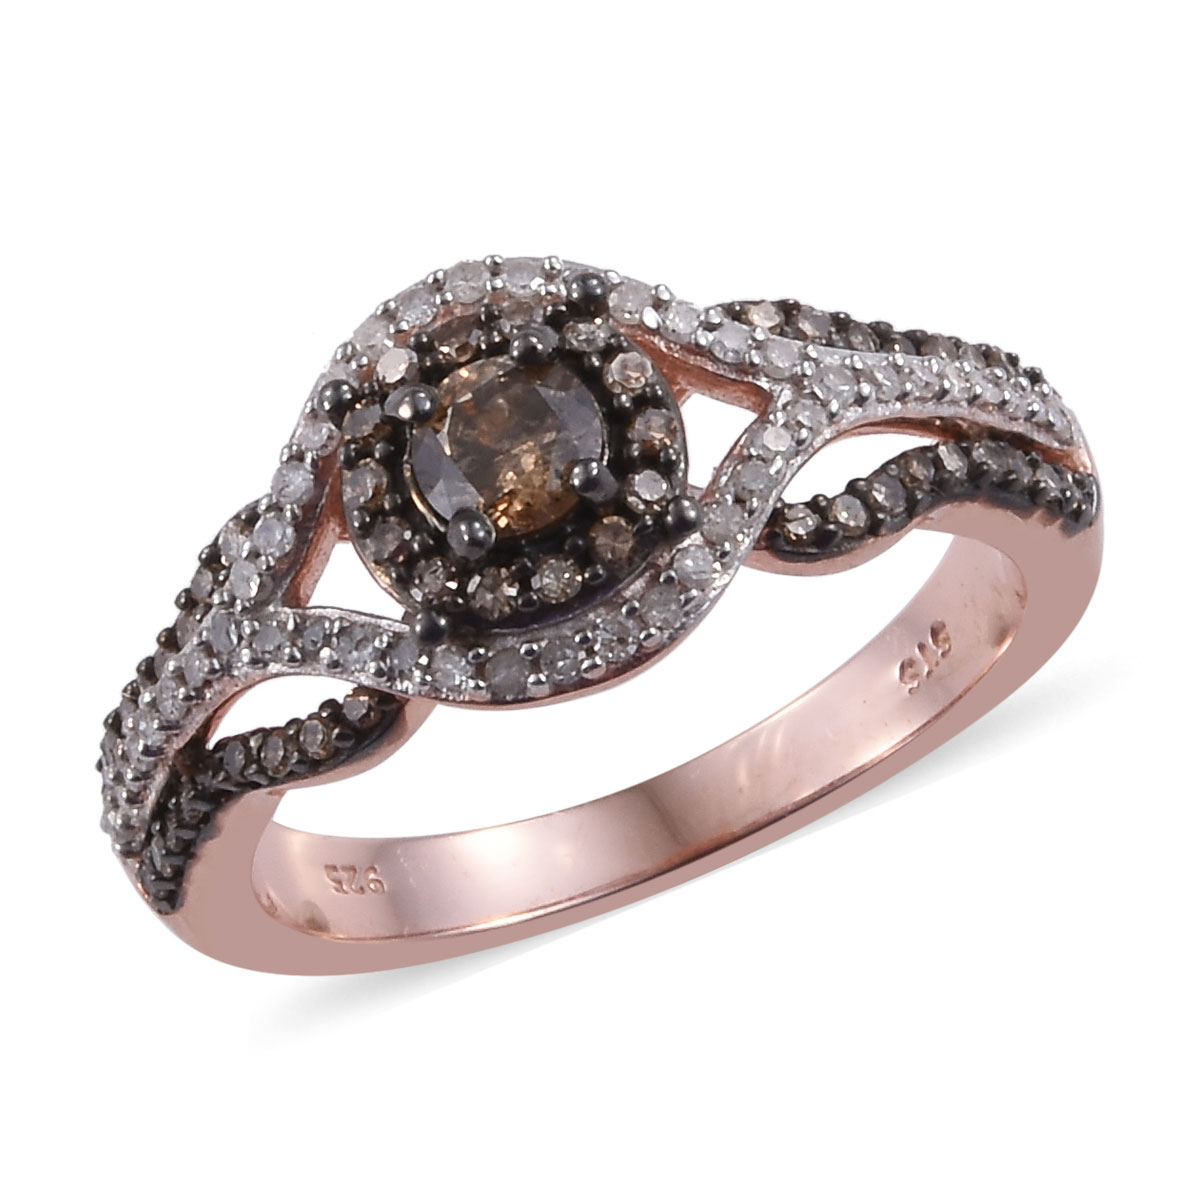 Natural Champagne and White Diamond (0.27 ct) Openwork Ring in Rhodium & Vermeil RG Over Sterling Silver (Size 6.0) 1.00 ctw